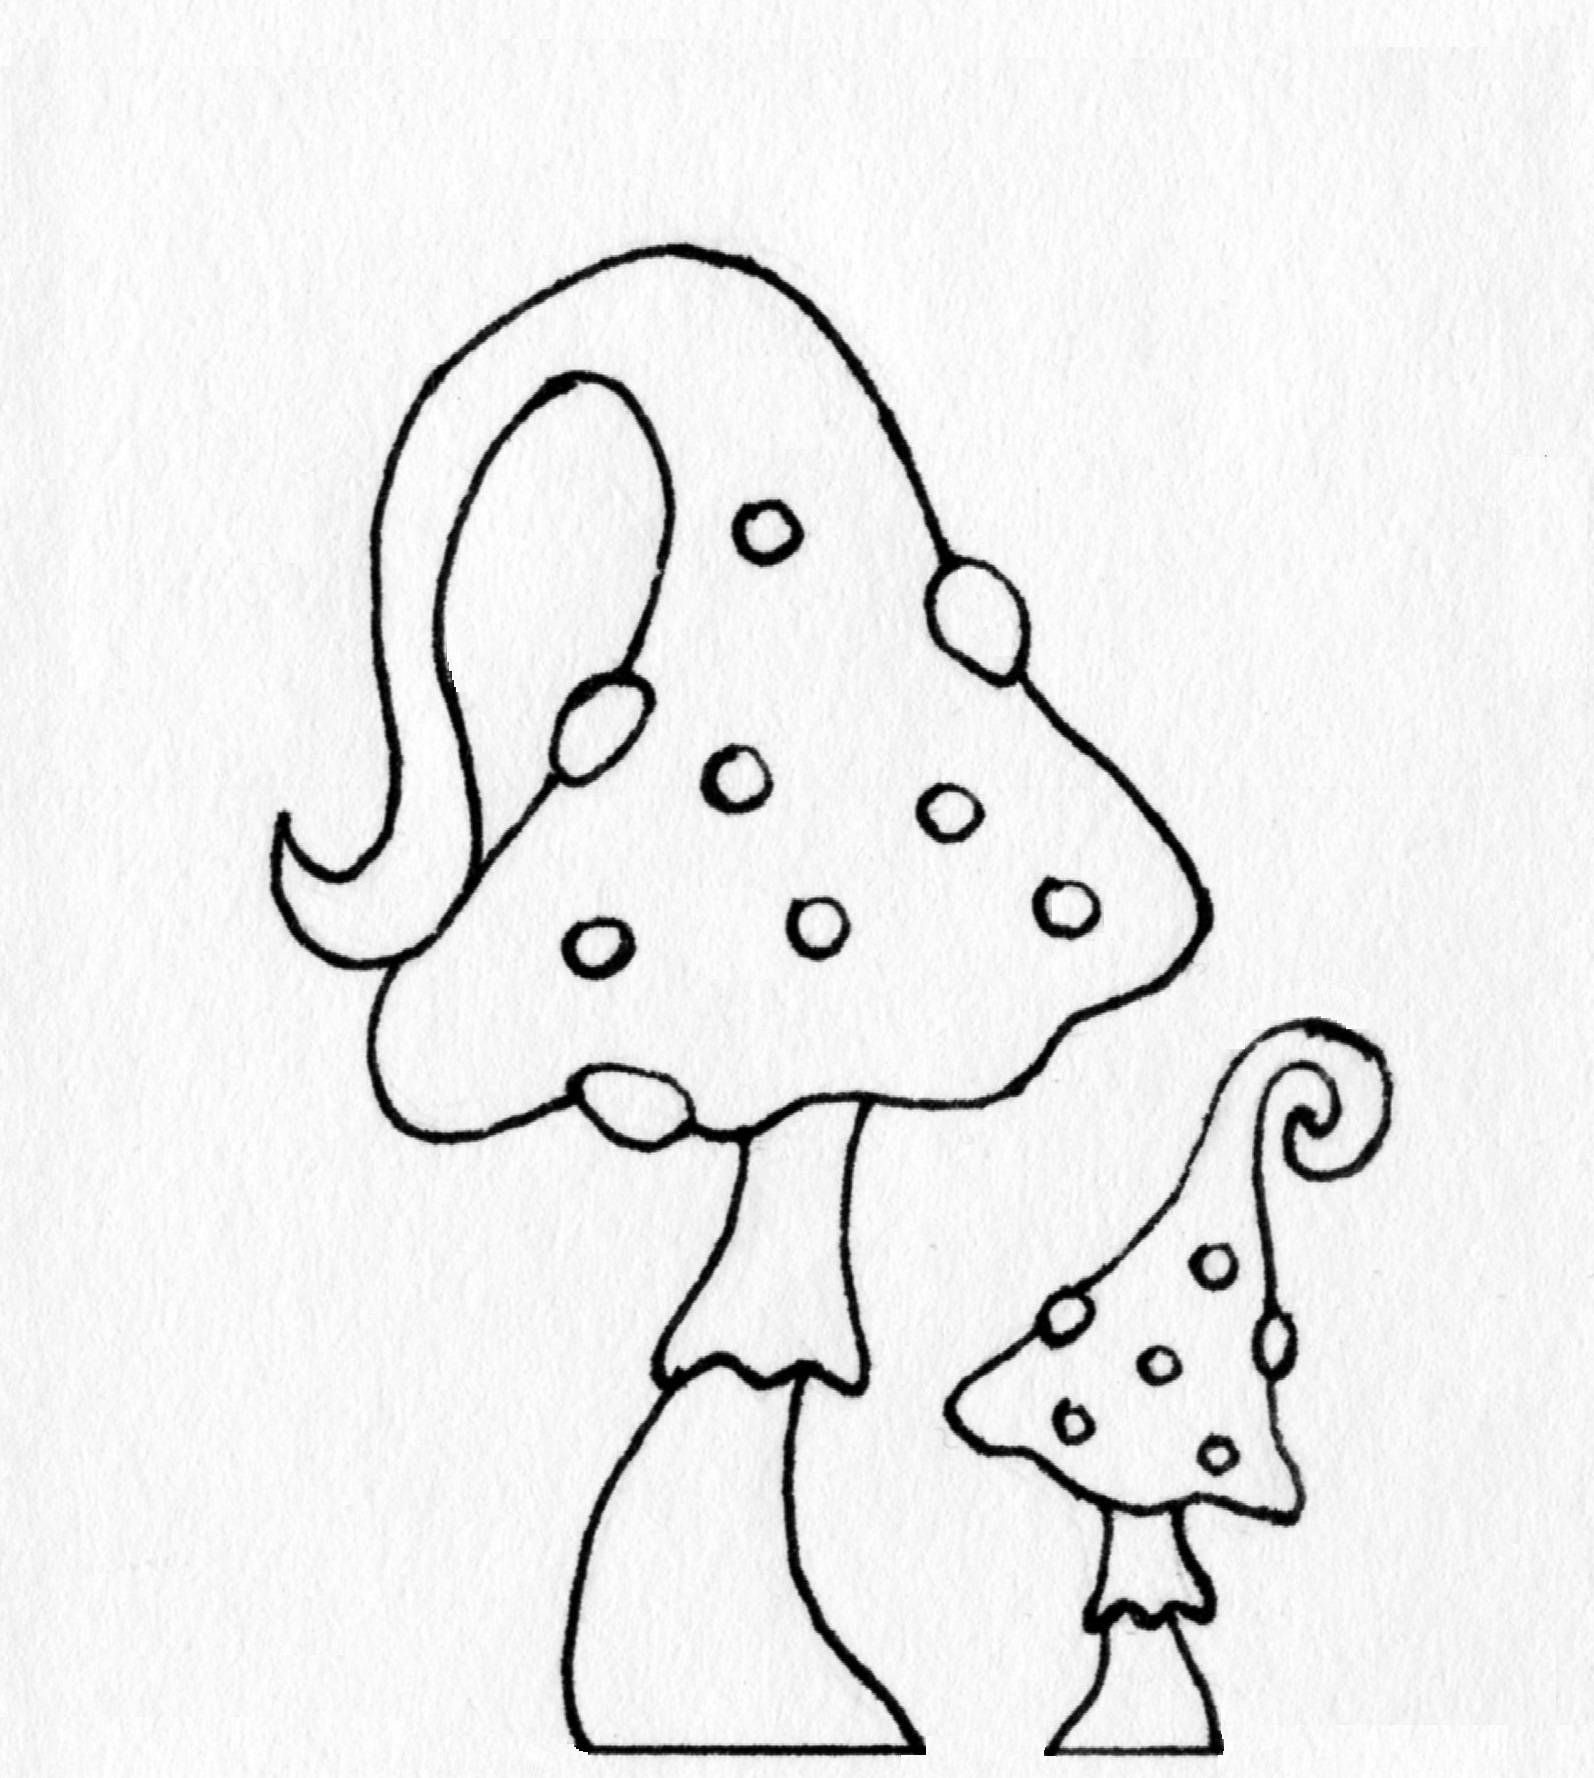 Coloring Page Wizard Hat Mushroom By Blackcatstitchcrafts On Etsy Coloring Pages Wizard Hat Etsy